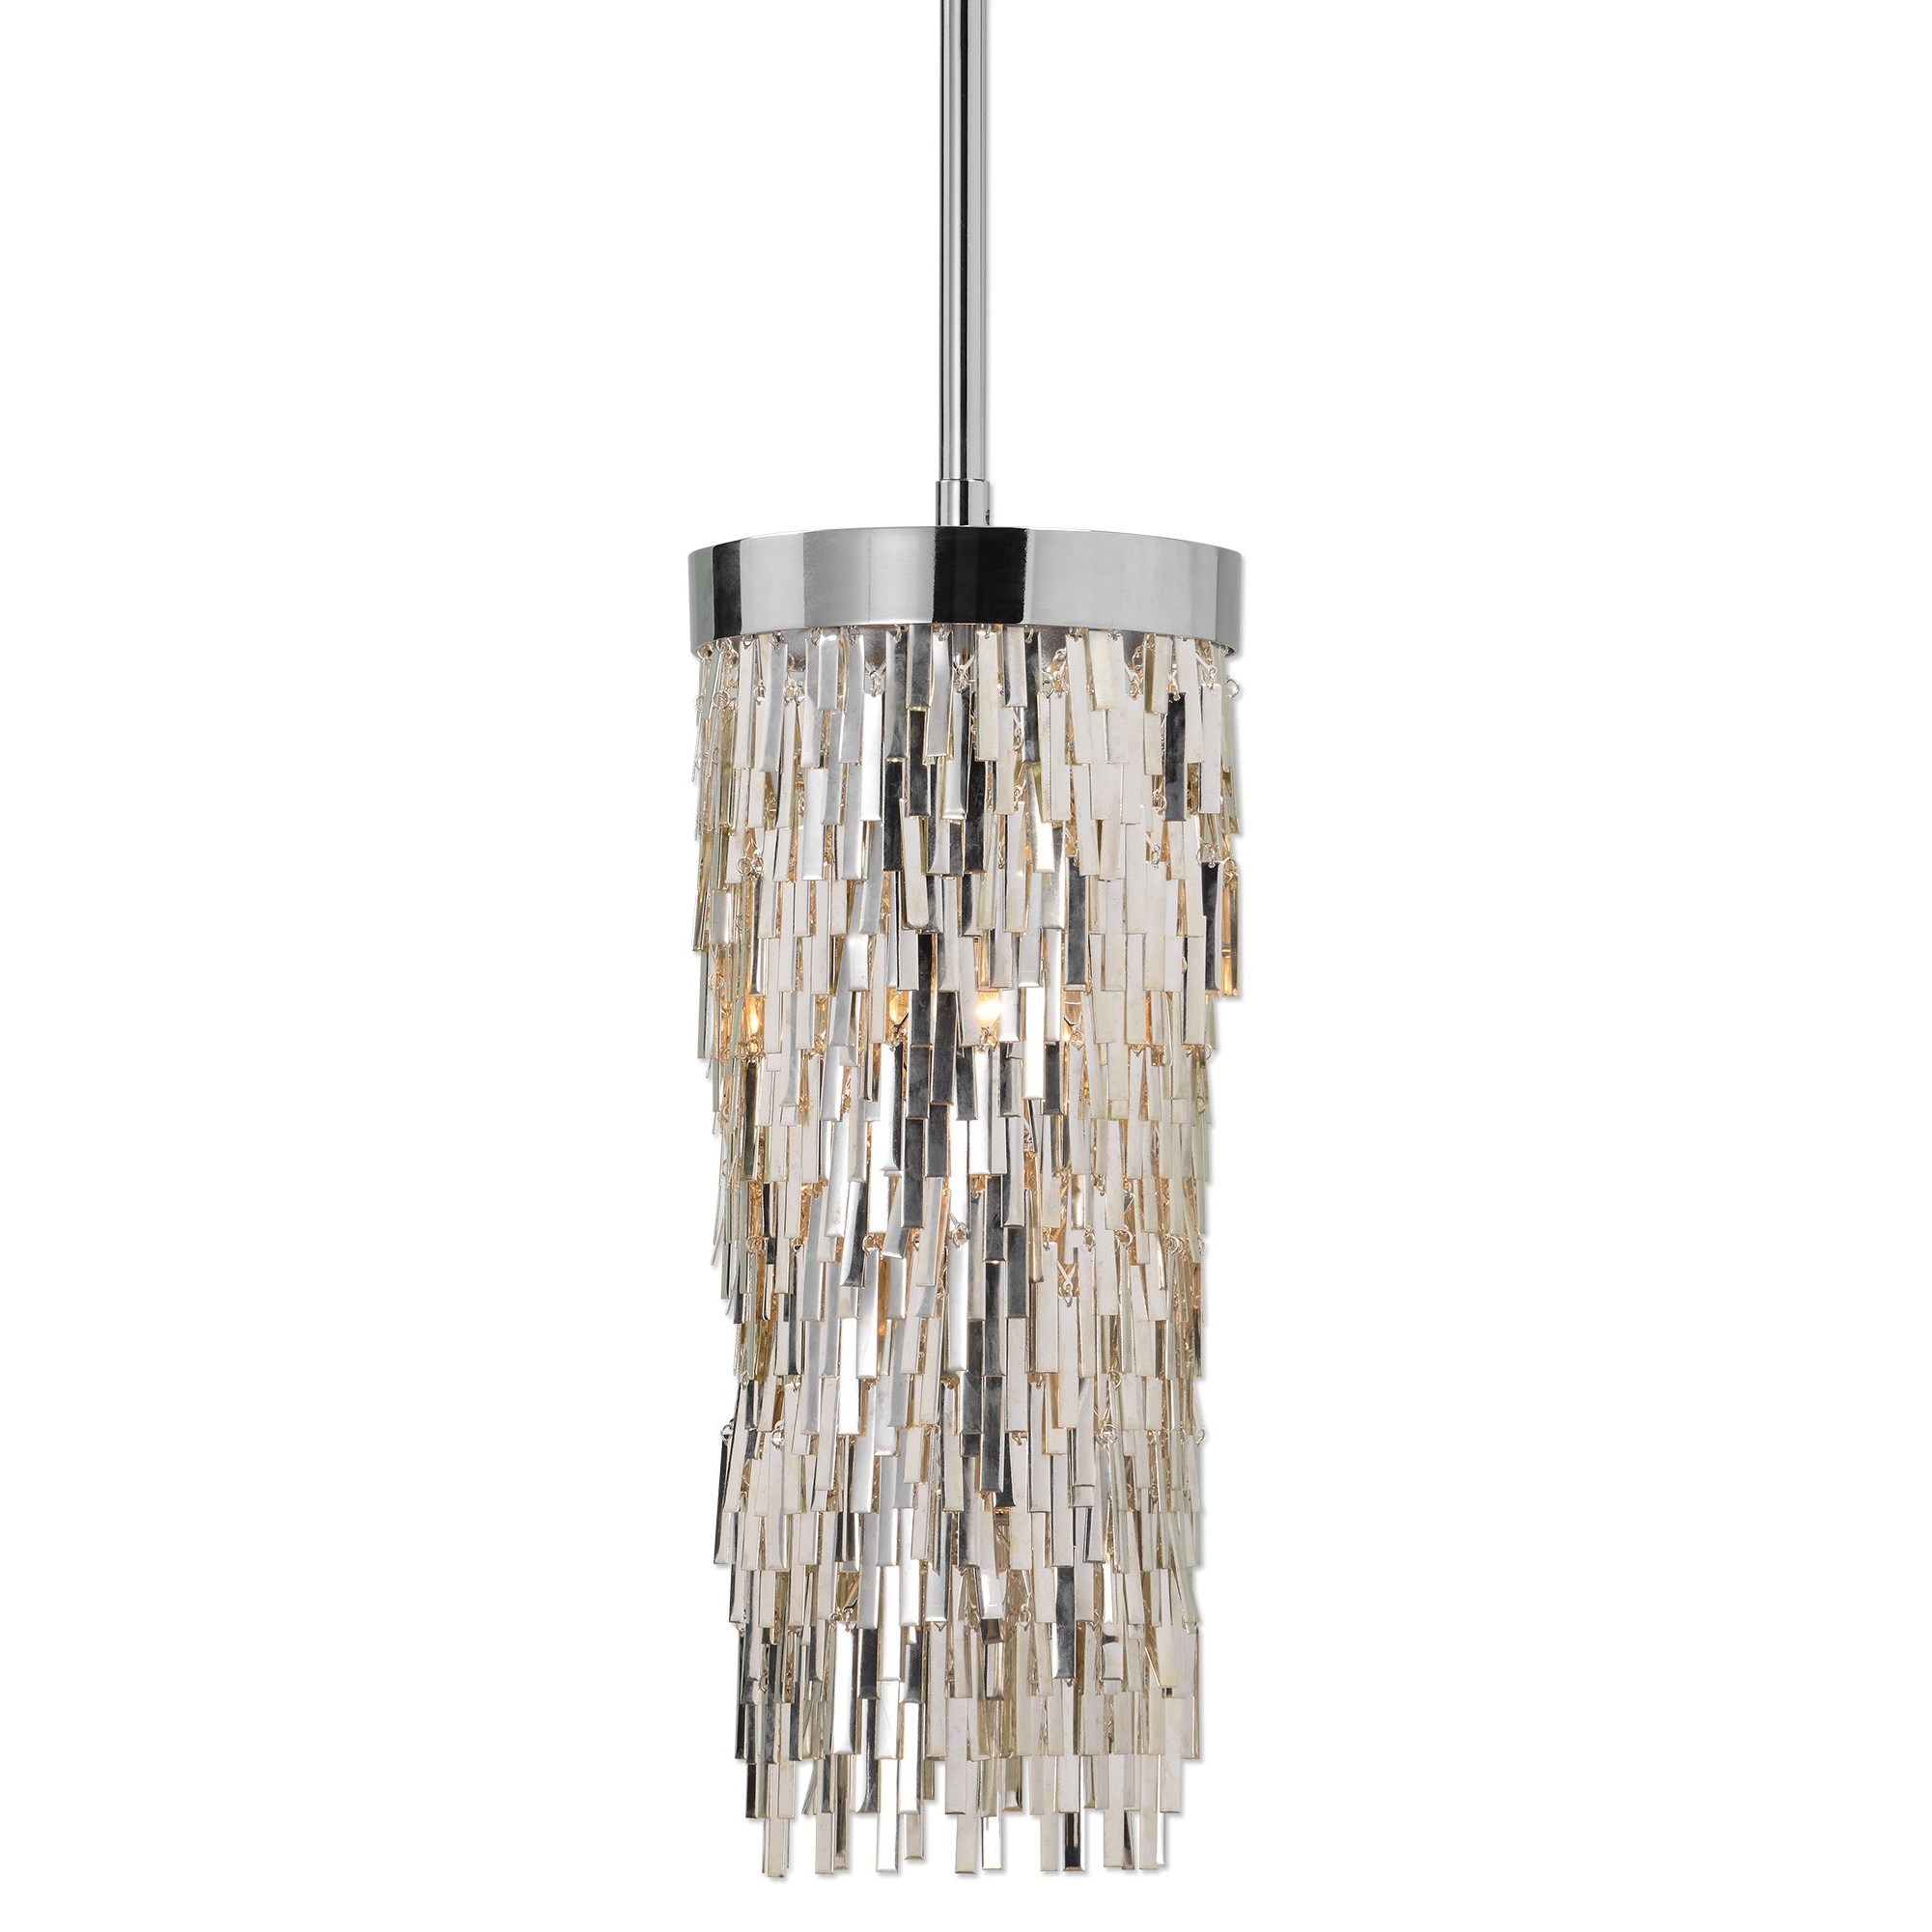 Uttermost Lighting Fixtures Millie 1 Light Chrome Mini Pendant - Item Number: 22082